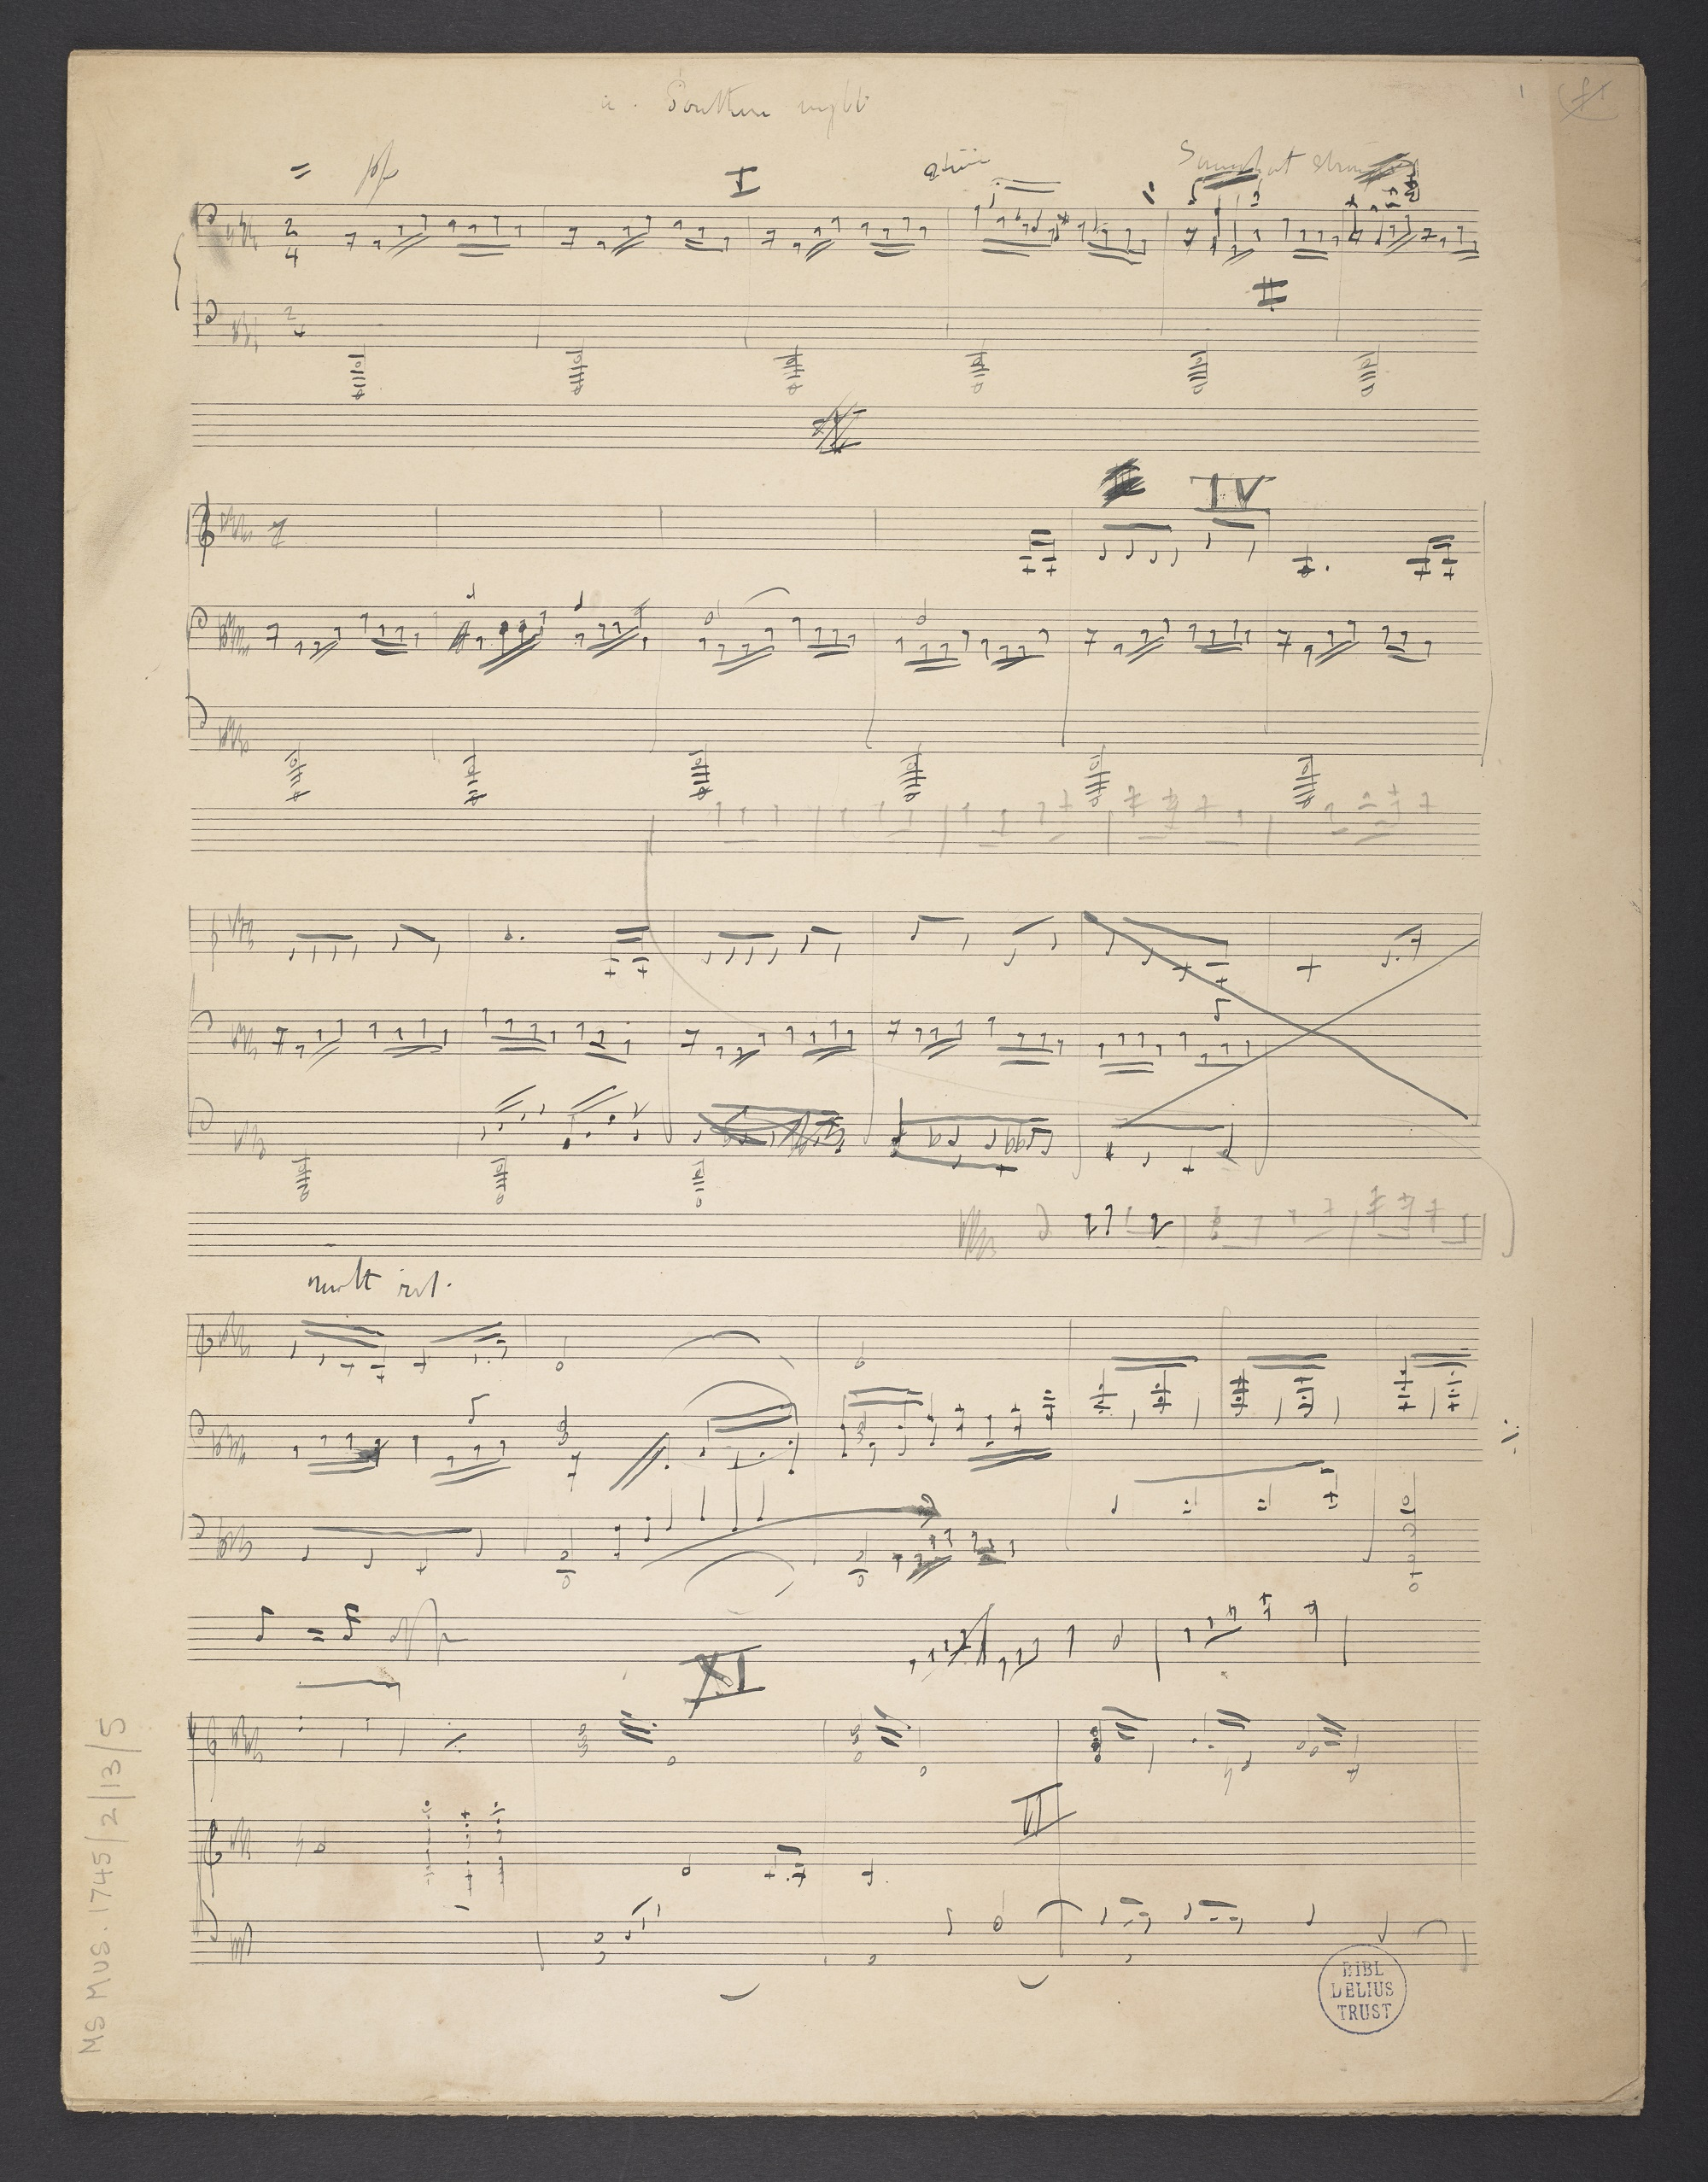 Sketch of Frederick Delius, 'Southern Night', f. 1r